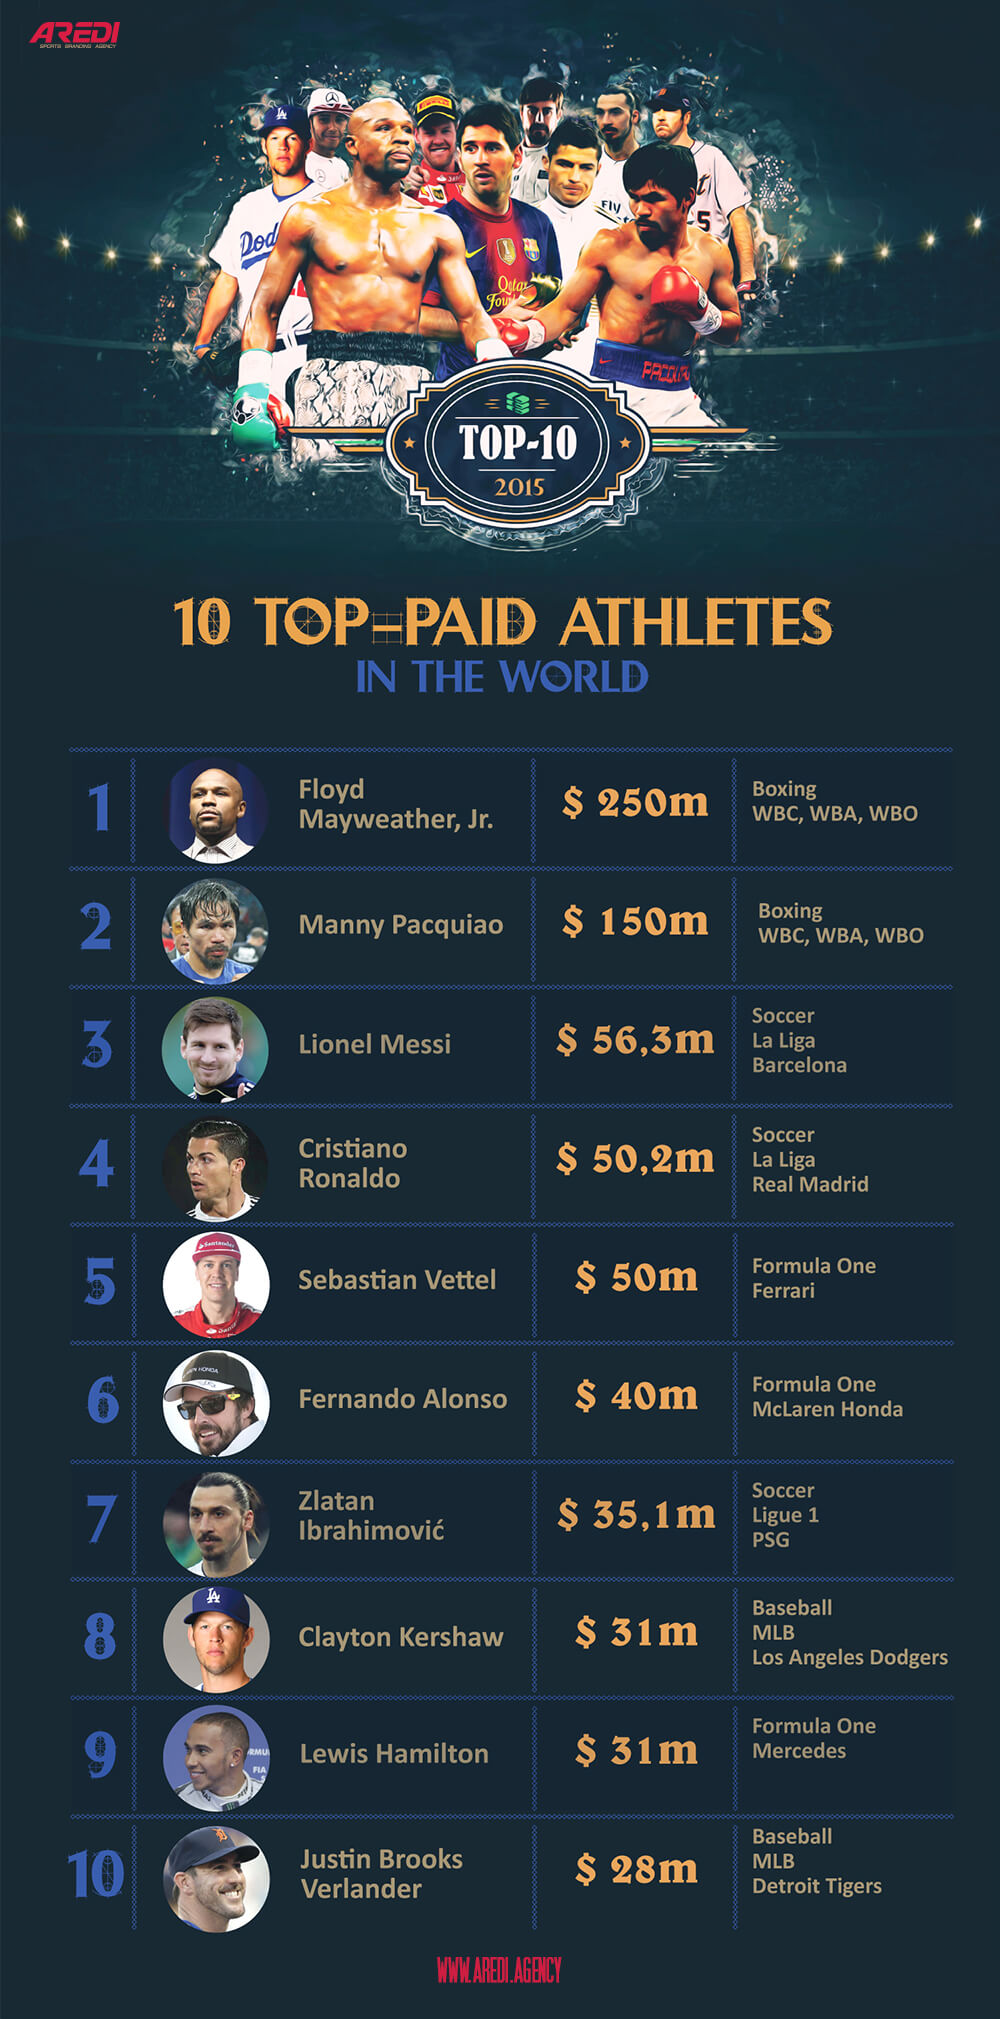 10 TOP-paid athletes in the world